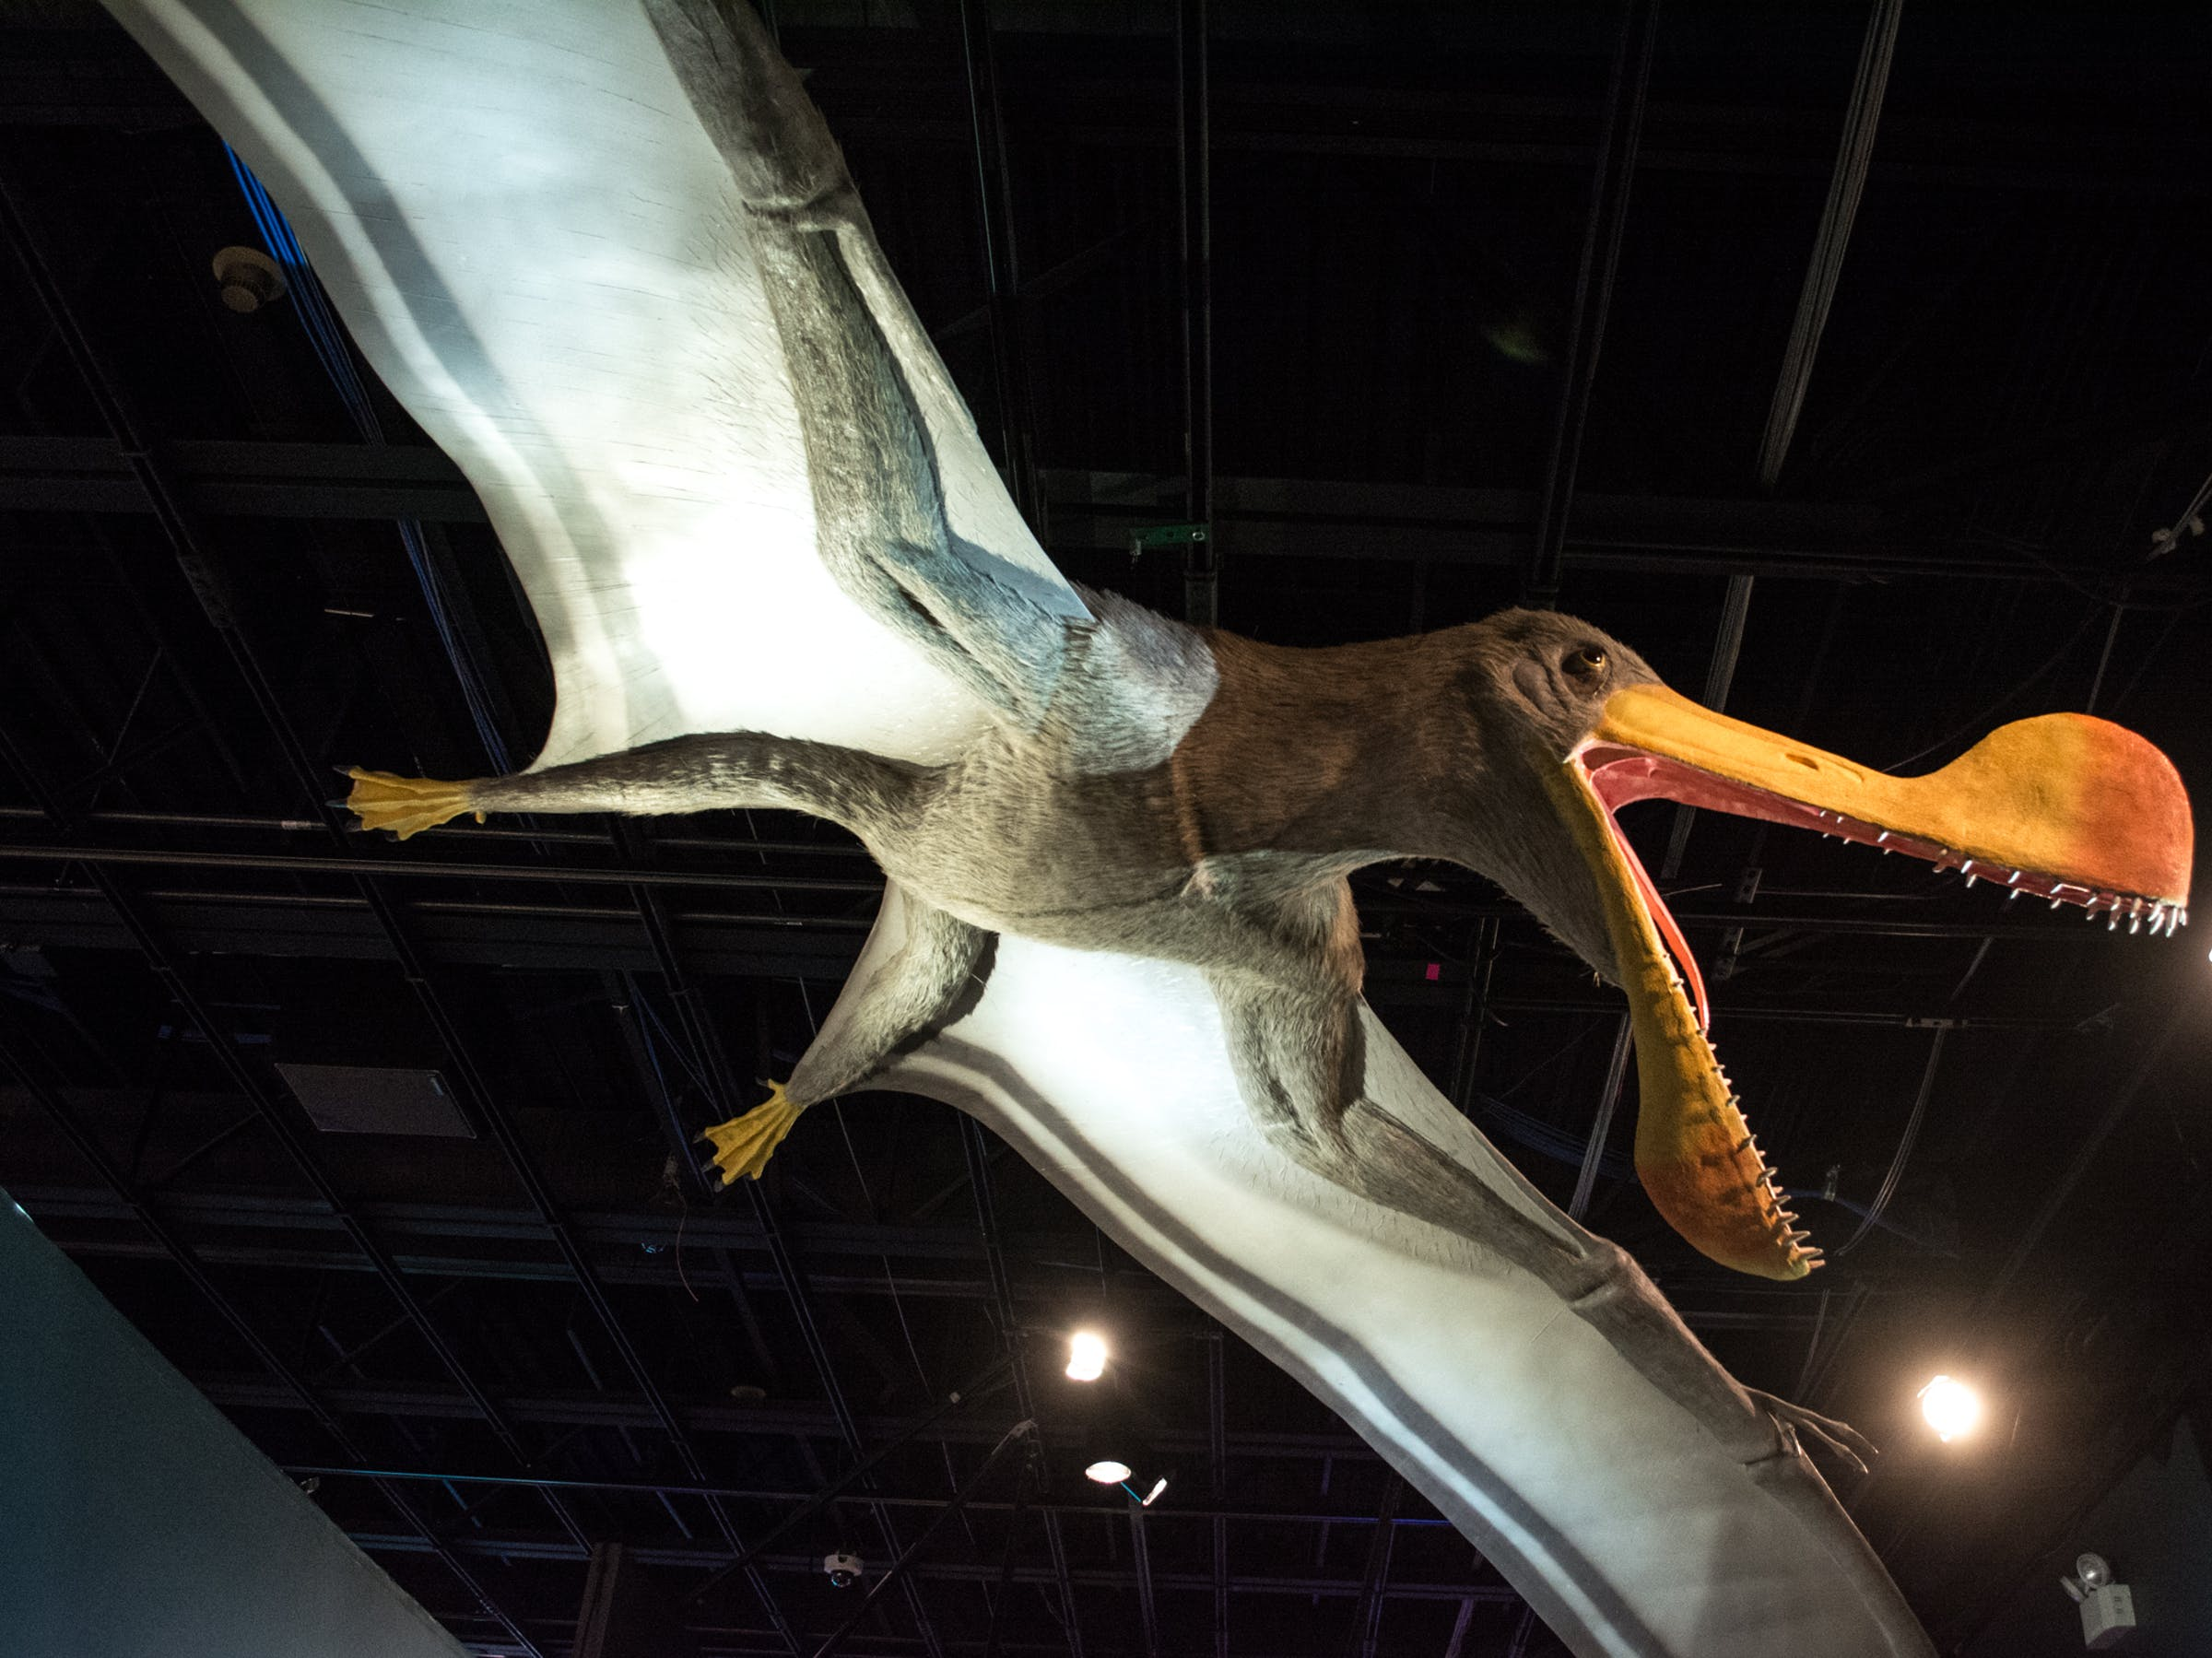 Tropeognathus model 03 - Pterosaurs Flight in the Age of Dinosaurs